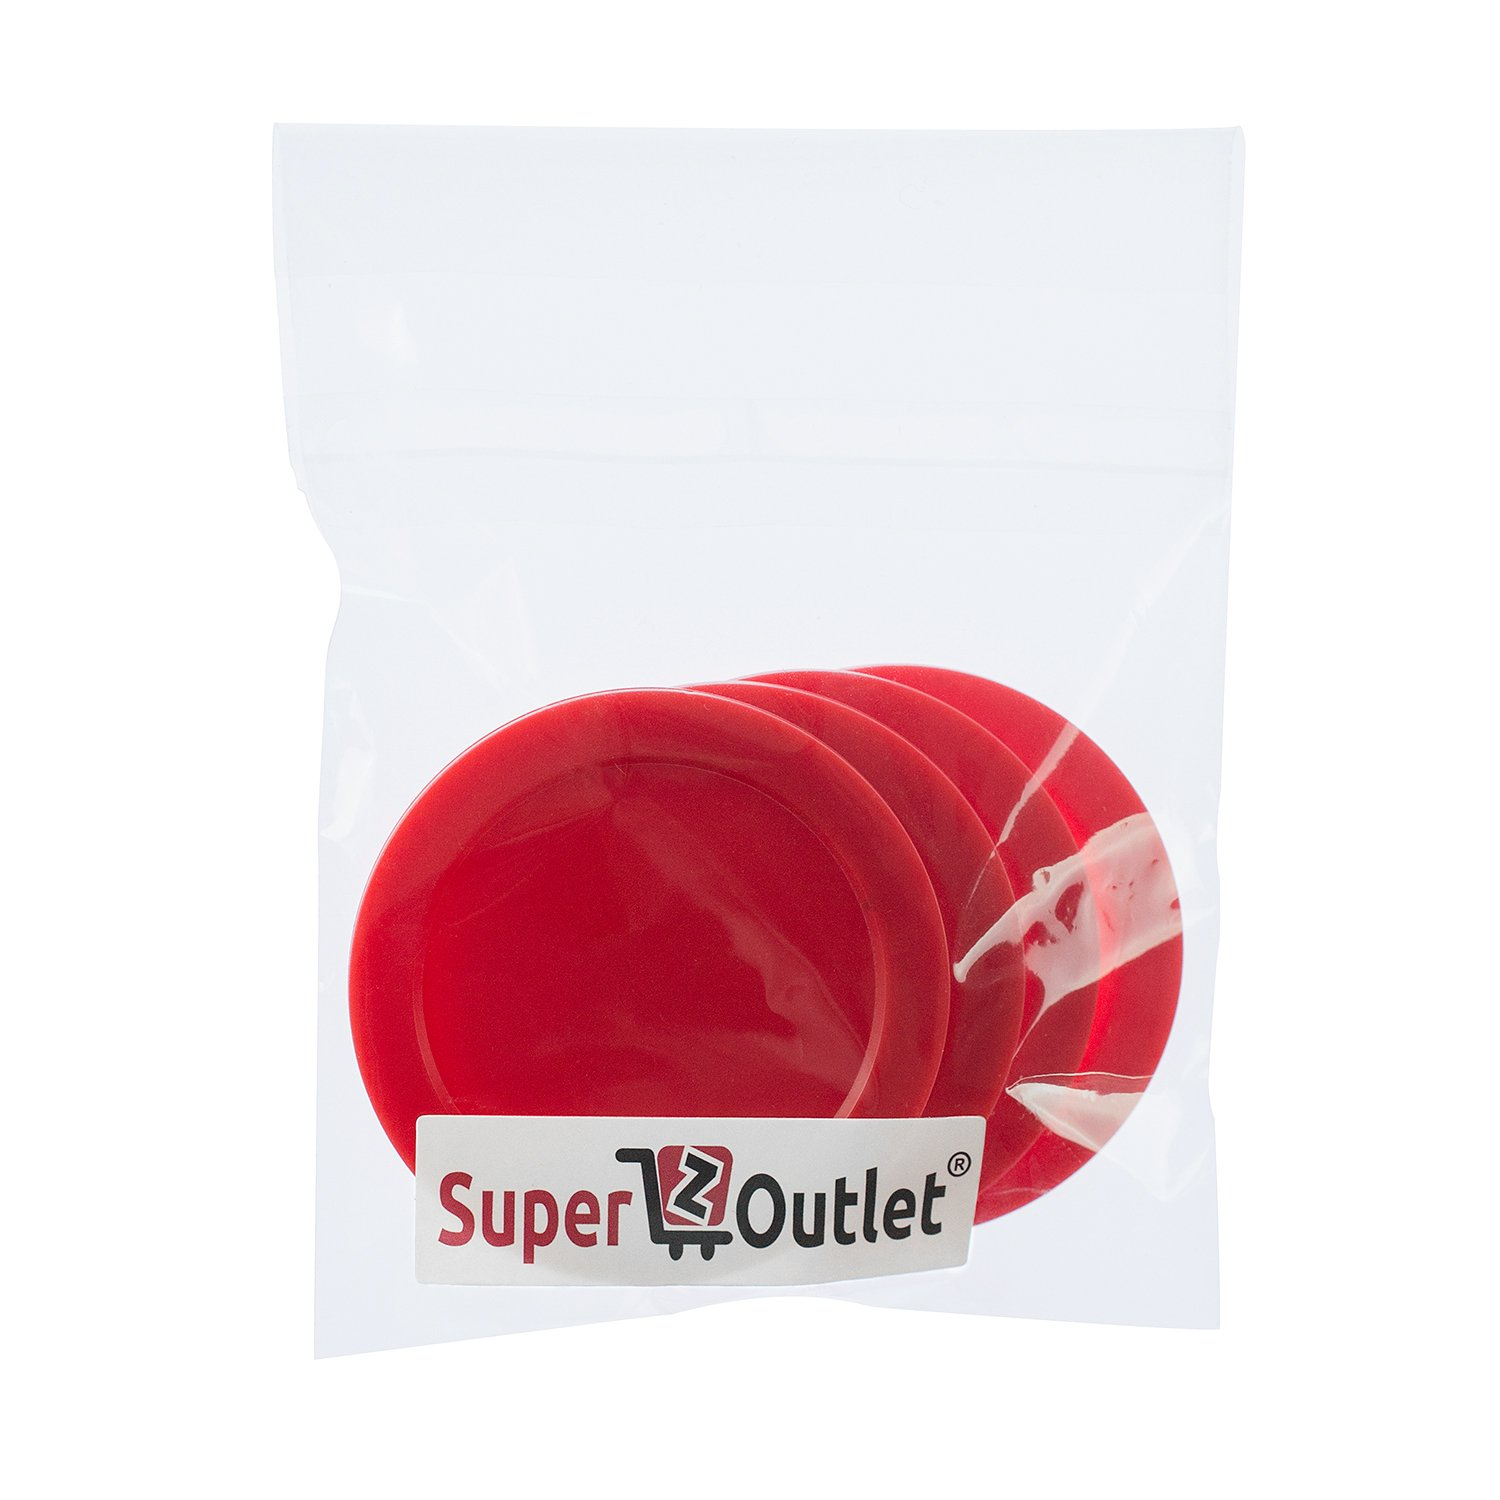 Super Z Outlet Home Air Hockey Red Replacement 2.5 Pucks for Game Tables Equipment Accessories 4 Pack